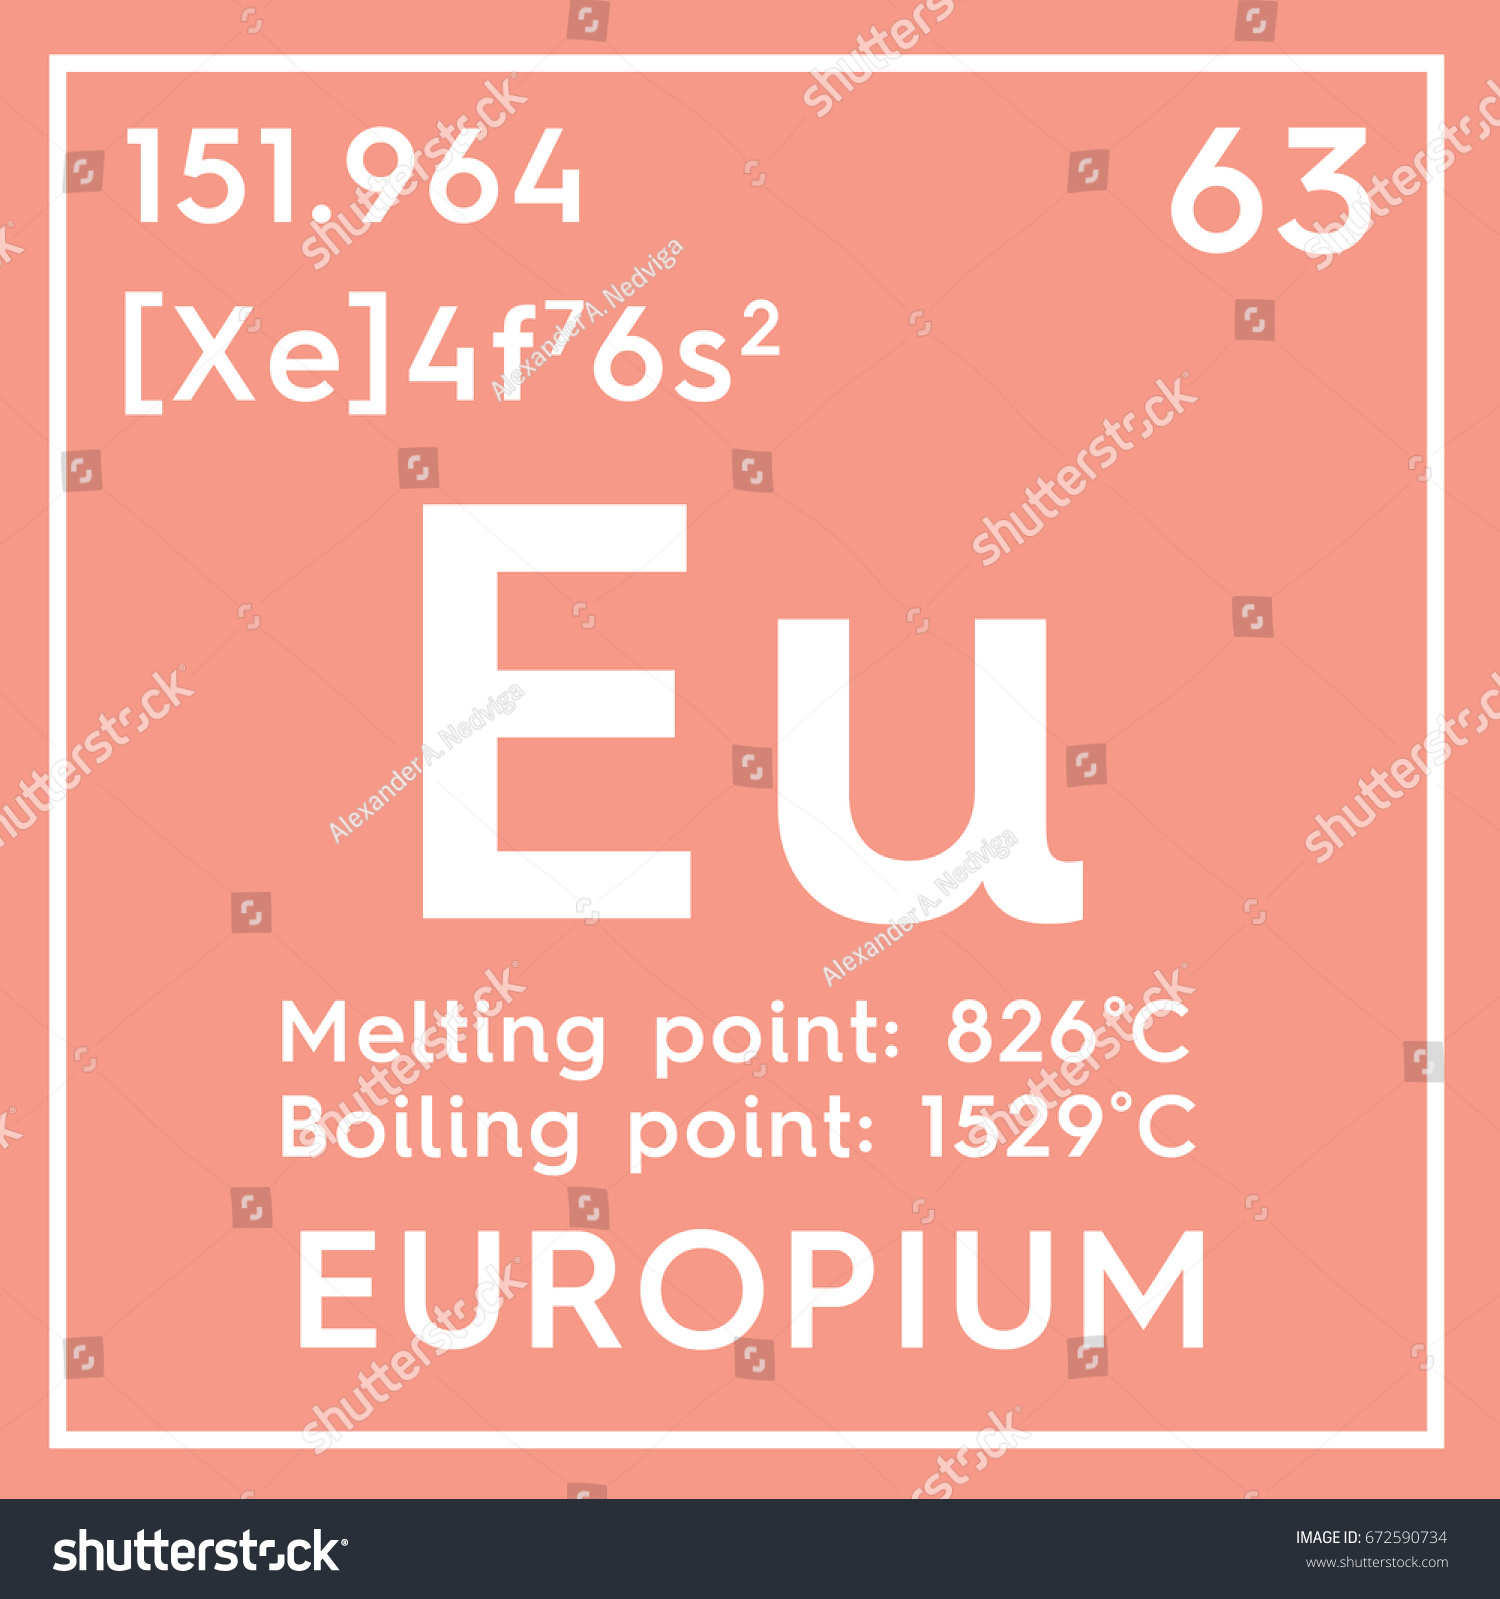 Boiling points periodic table choice image periodic table images europium lanthanoids chemical element mendeleevs periodic stock chemical element of mendeleevs periodic table europium in square gamestrikefo Image collections